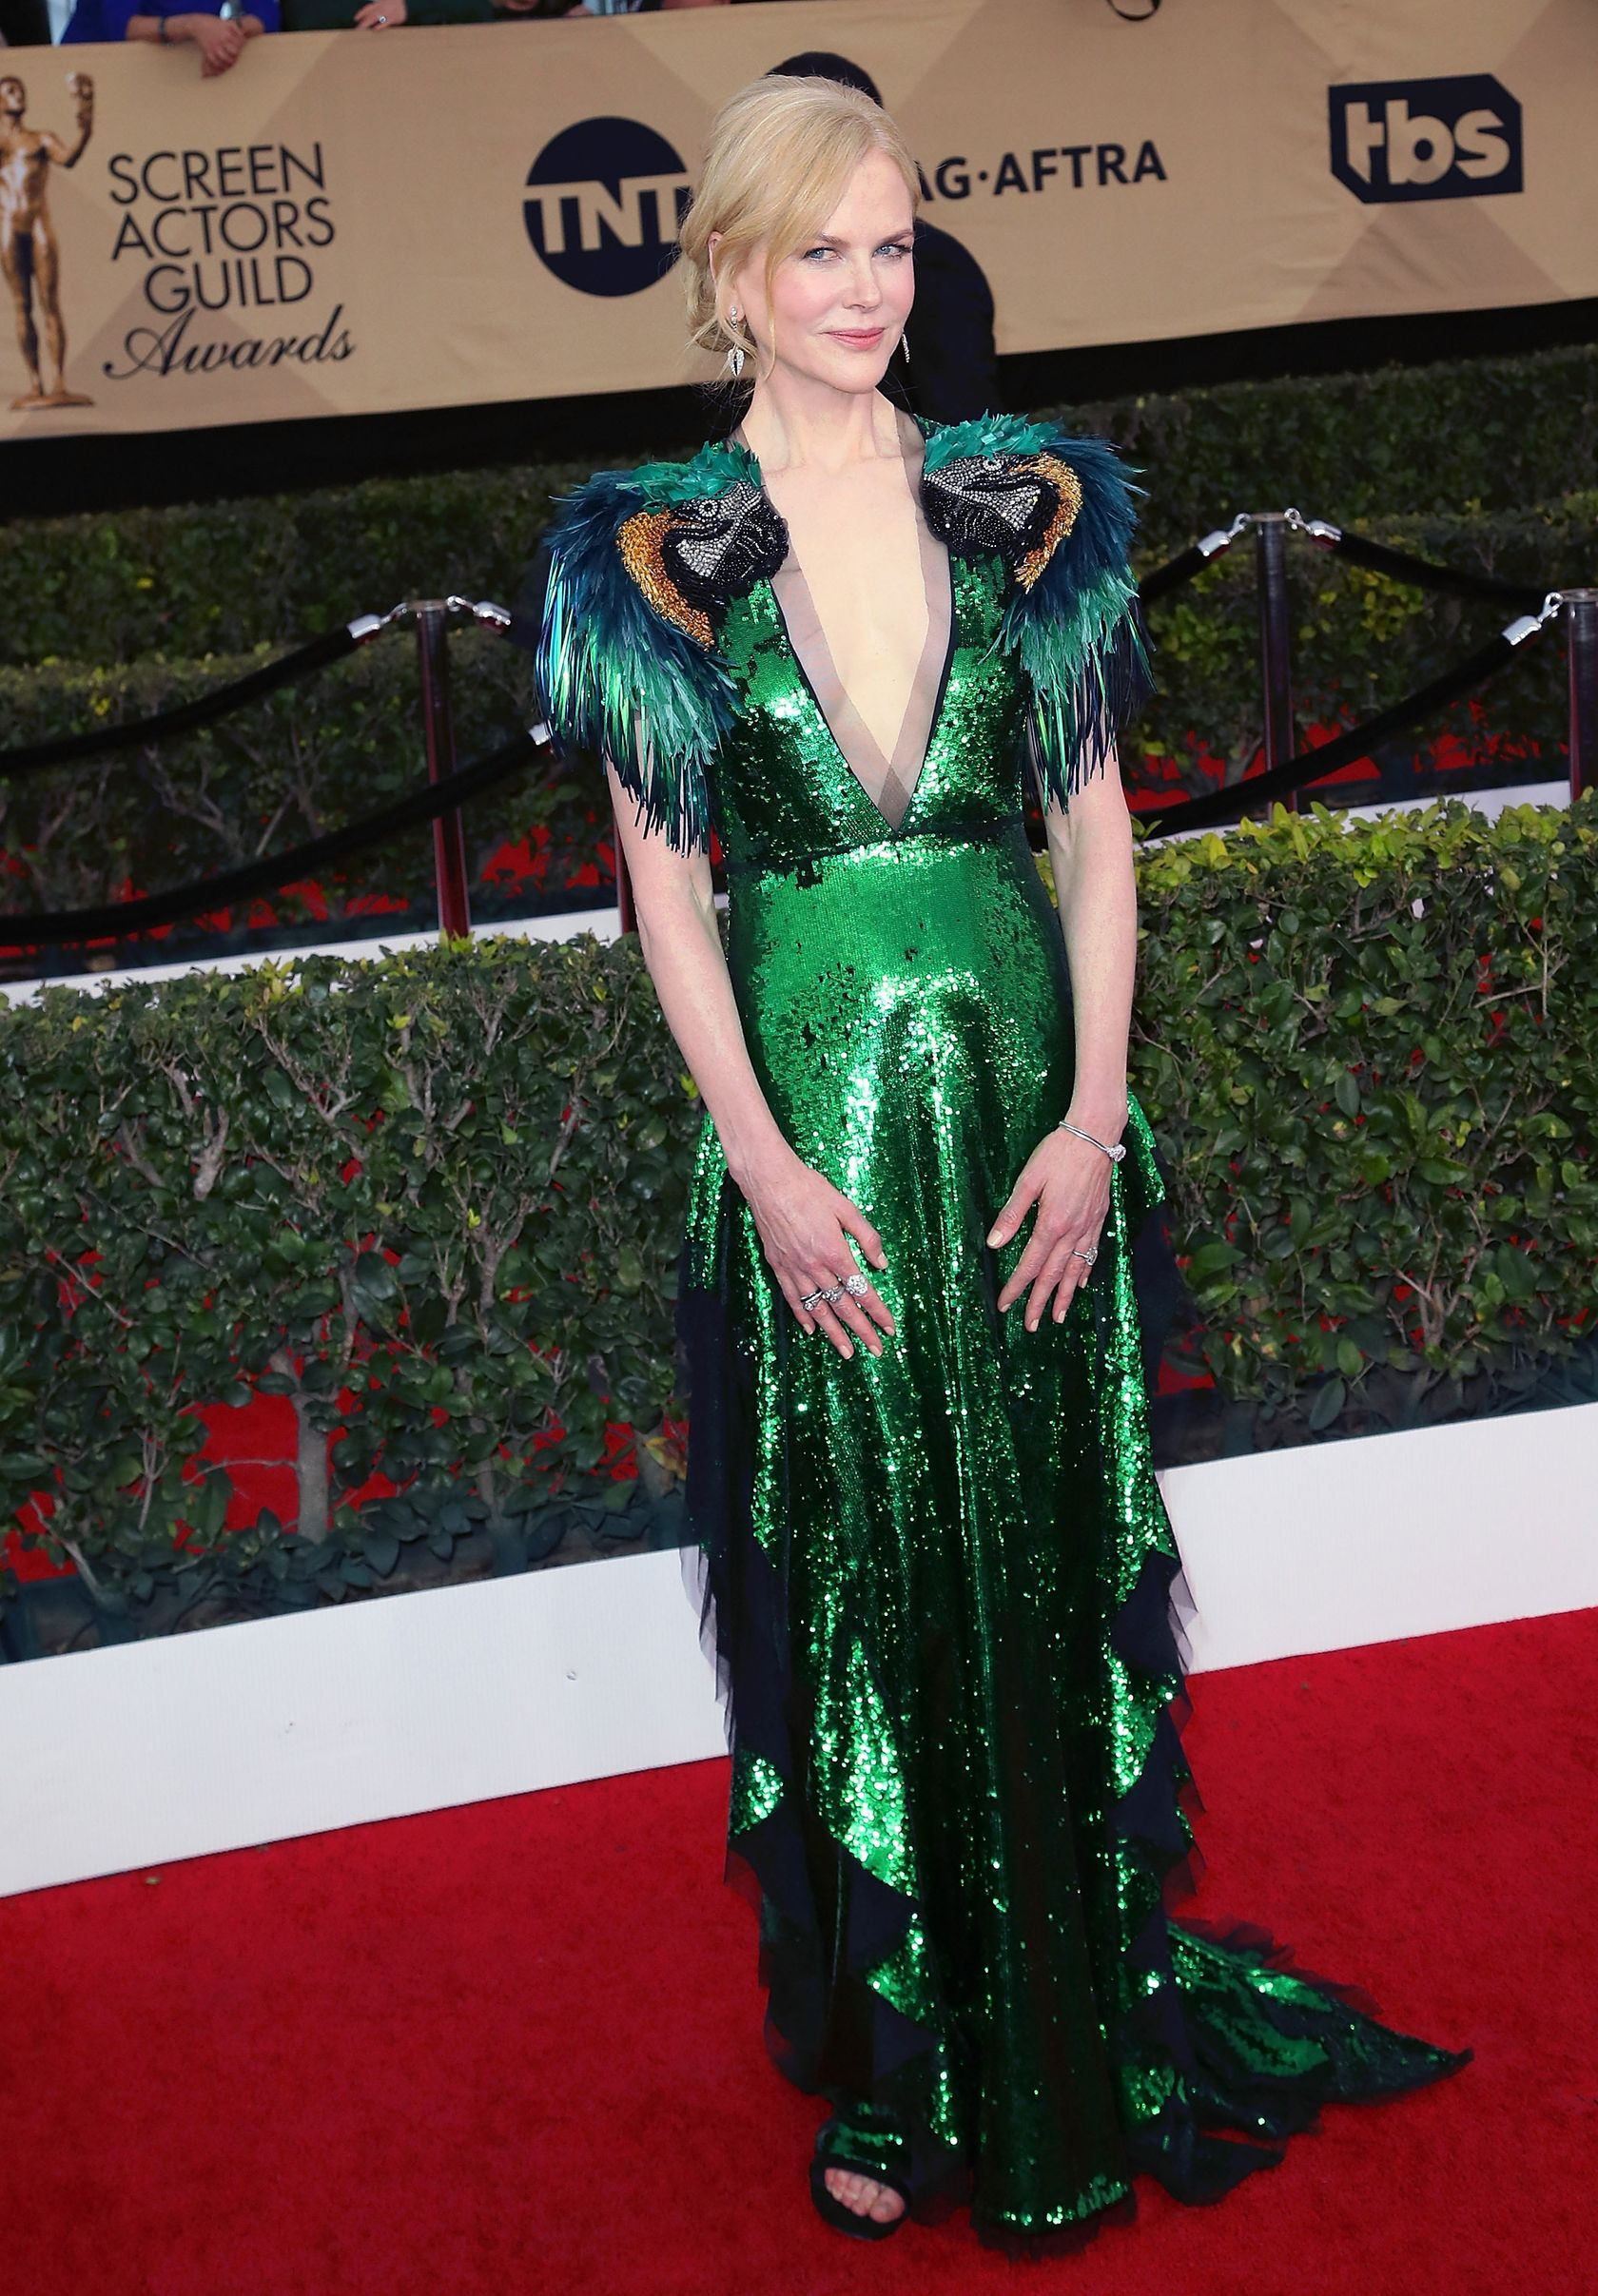 Most Gloriously Over-the-Top Gown: Nicole Kidman in Gucci - The Best ...